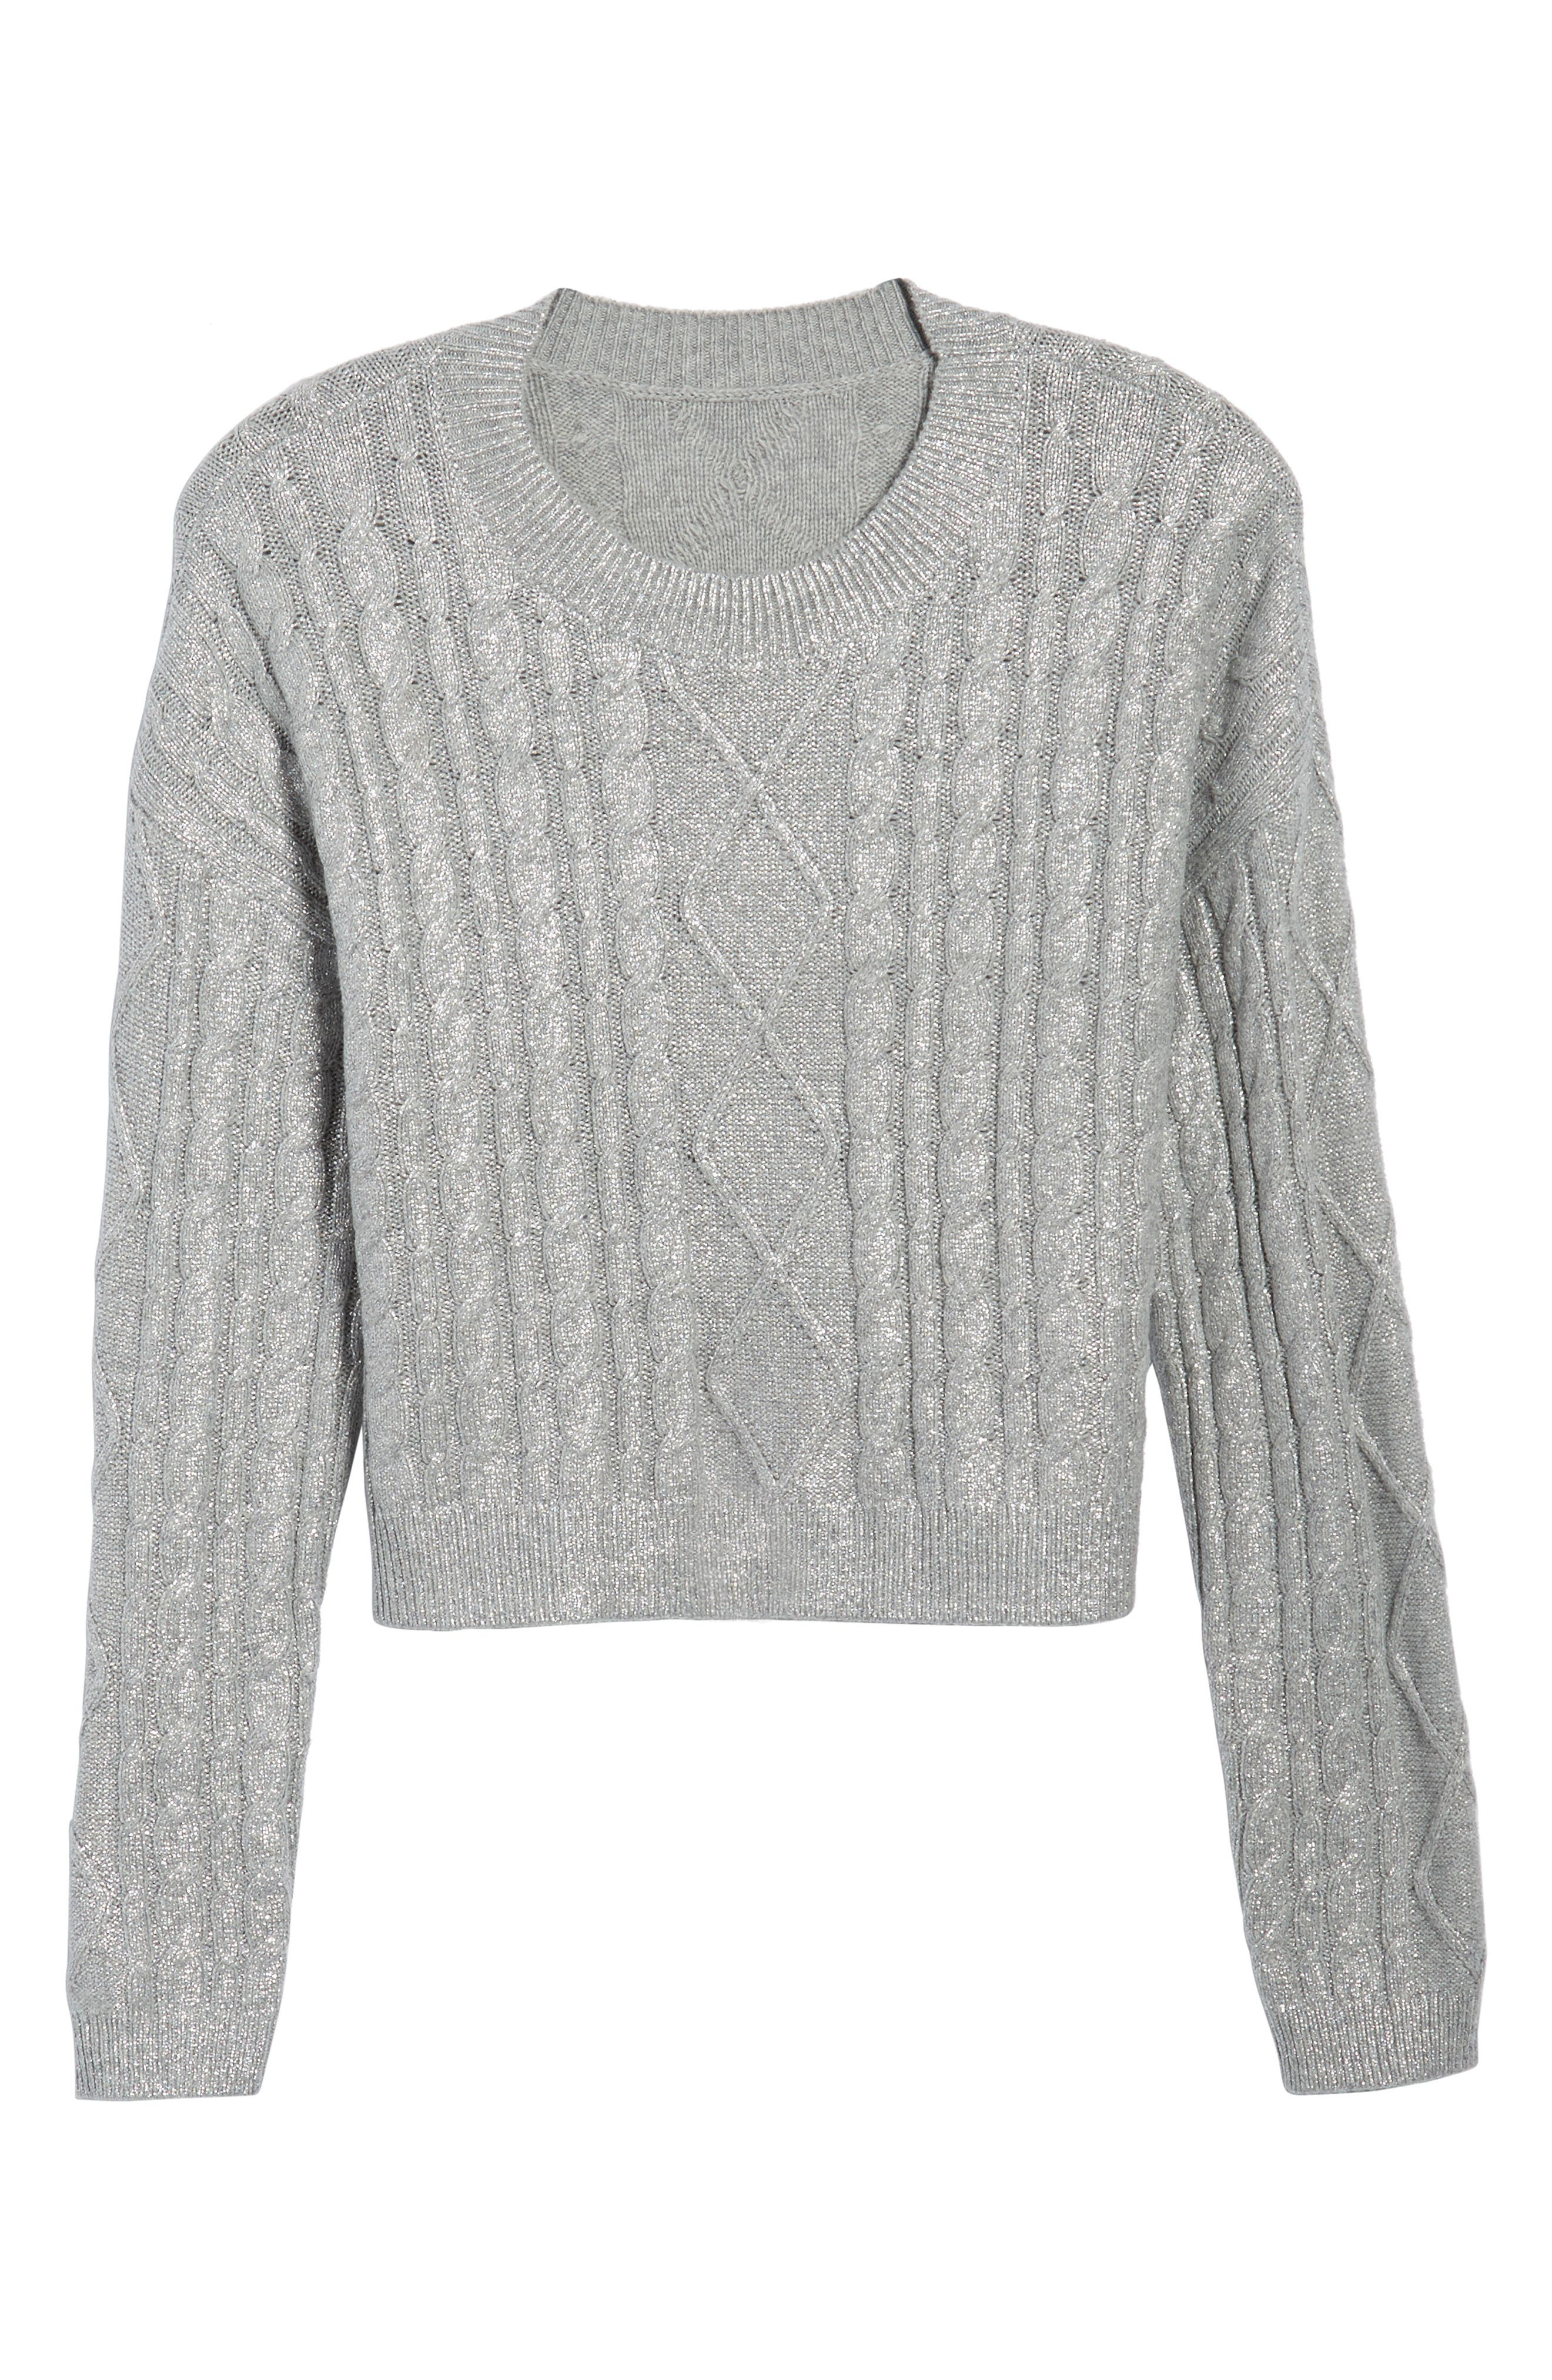 Metallic Cable Knit Sweater,                             Alternate thumbnail 6, color,                             030